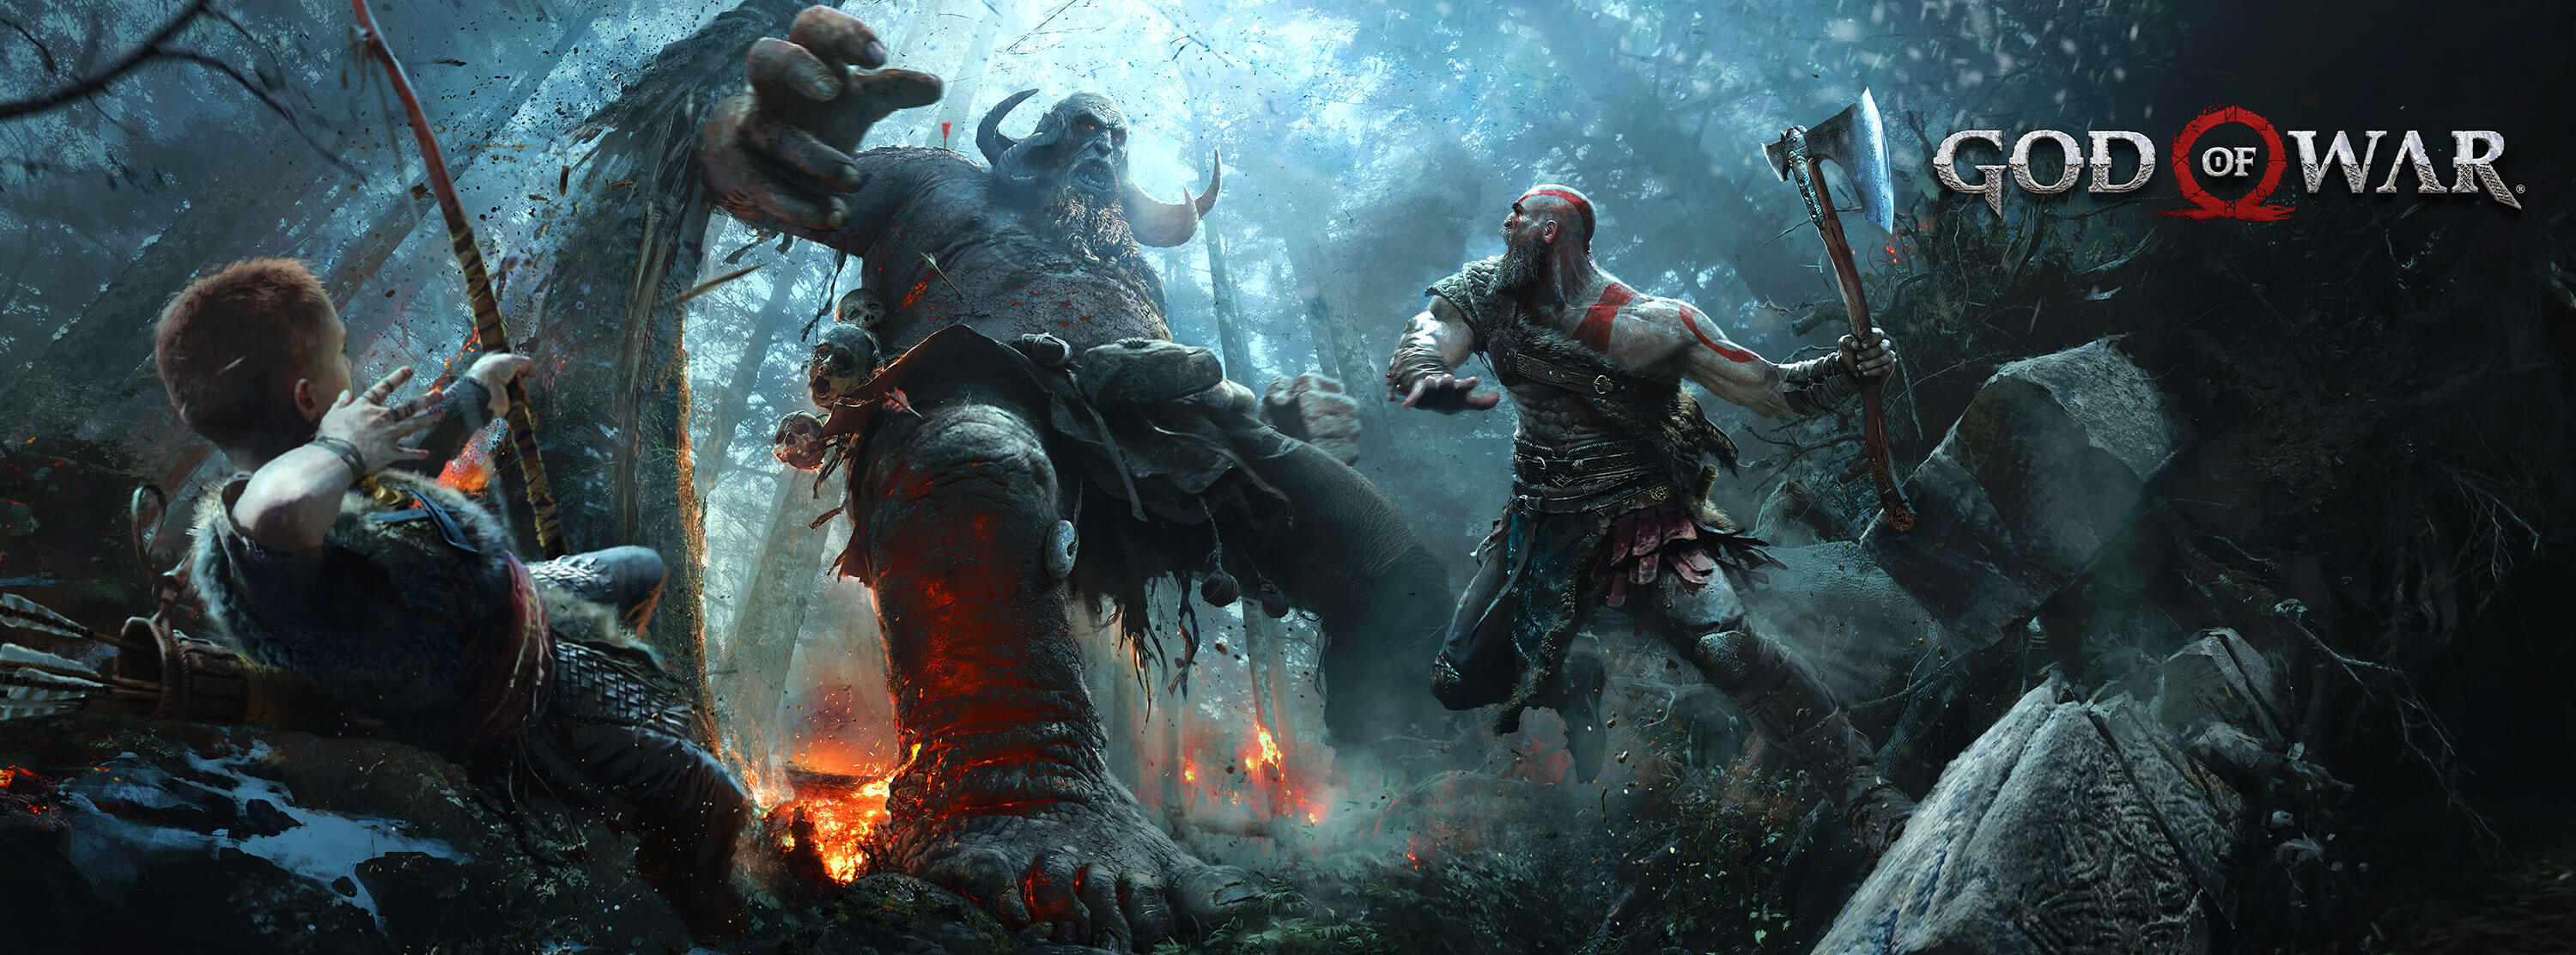 God of war 2017 hd games 4k wallpapers images - 4k wallpaper of god ...